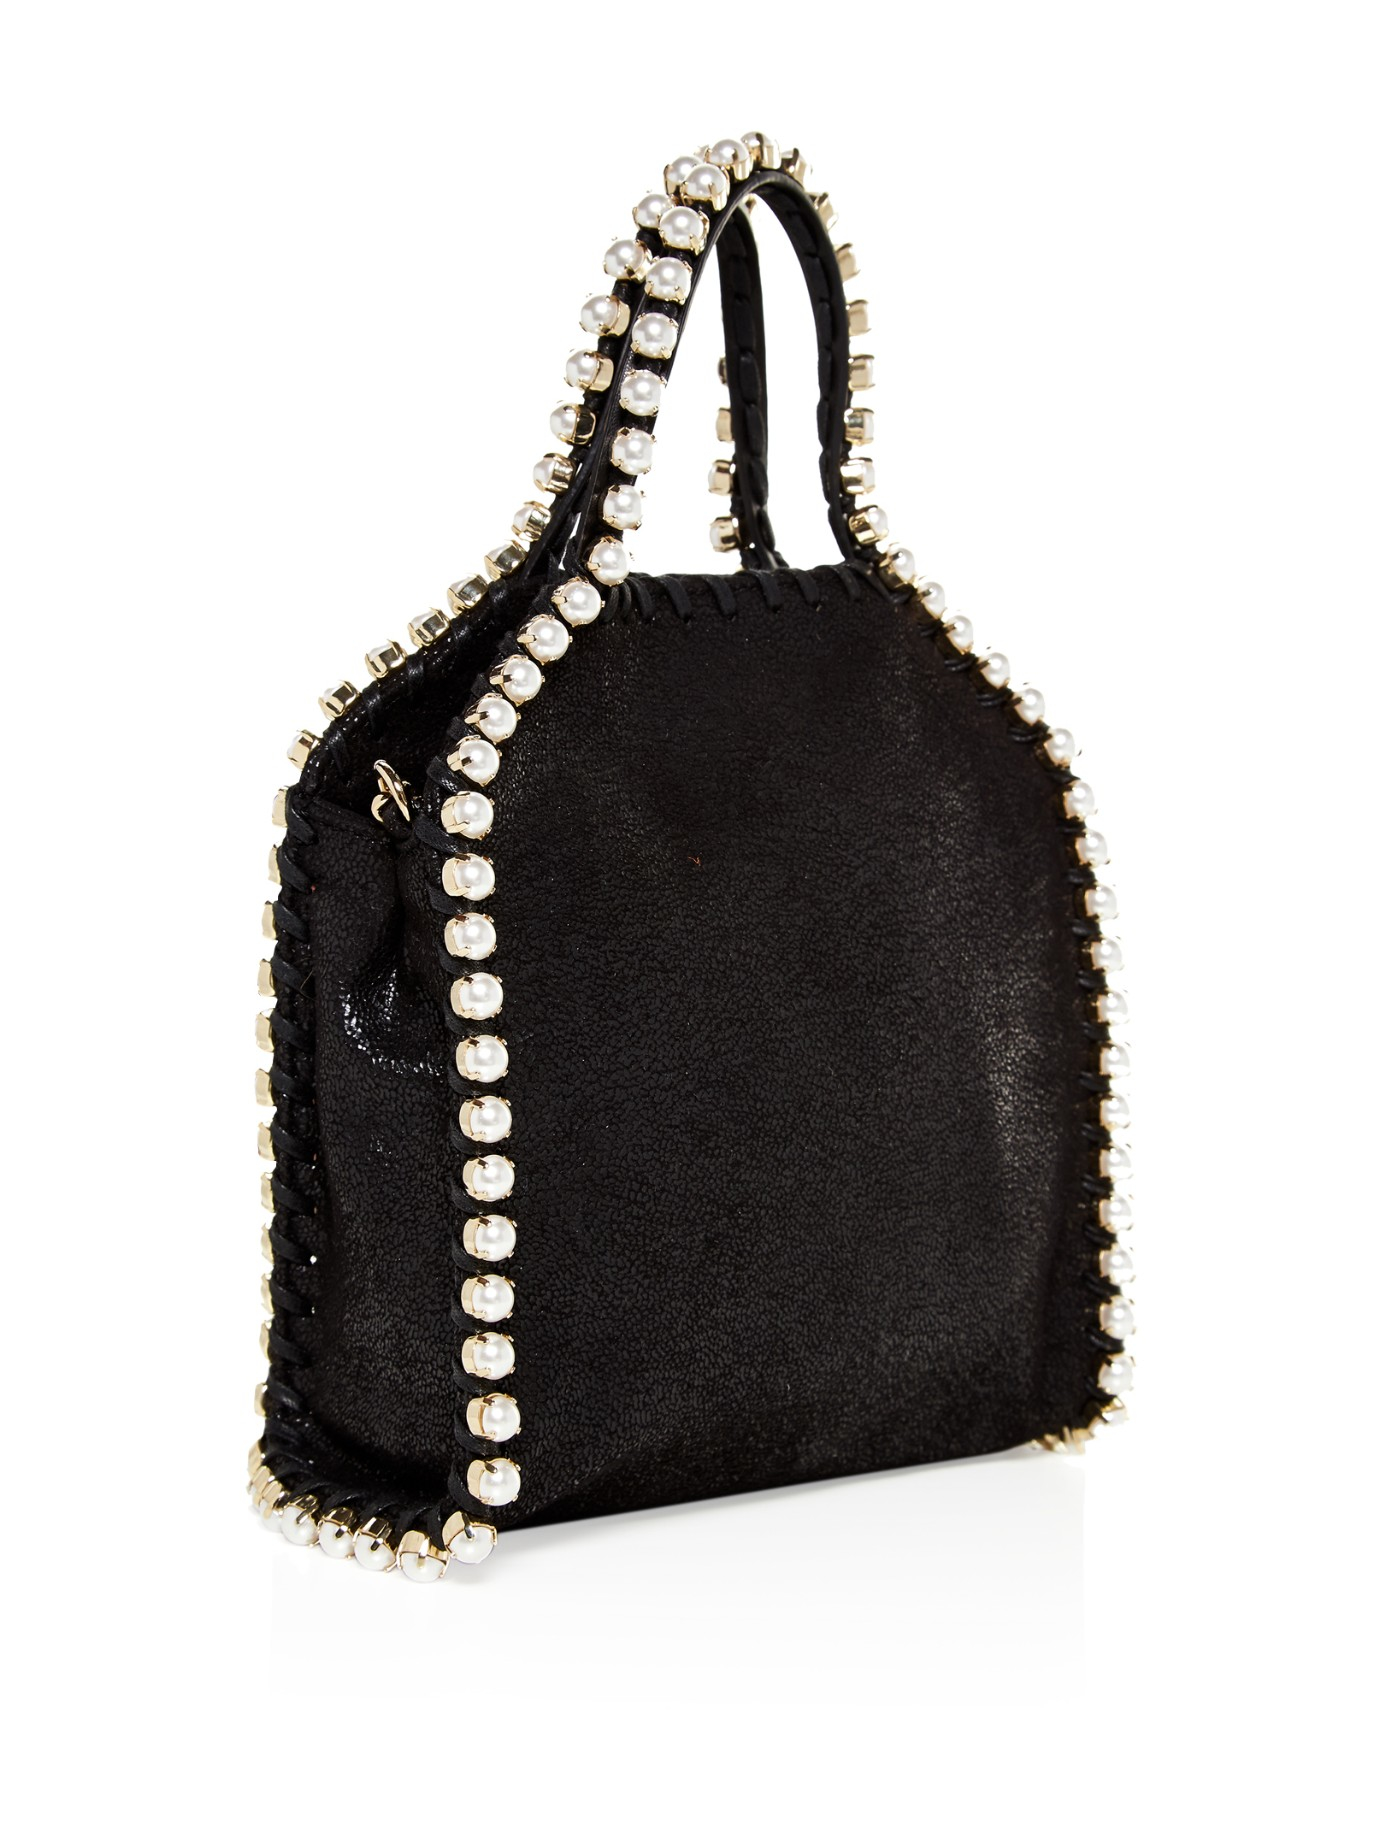 02c7939c6820 Lyst - Stella mccartney Falabella Tiny Embellished Cross-body Bag in Black